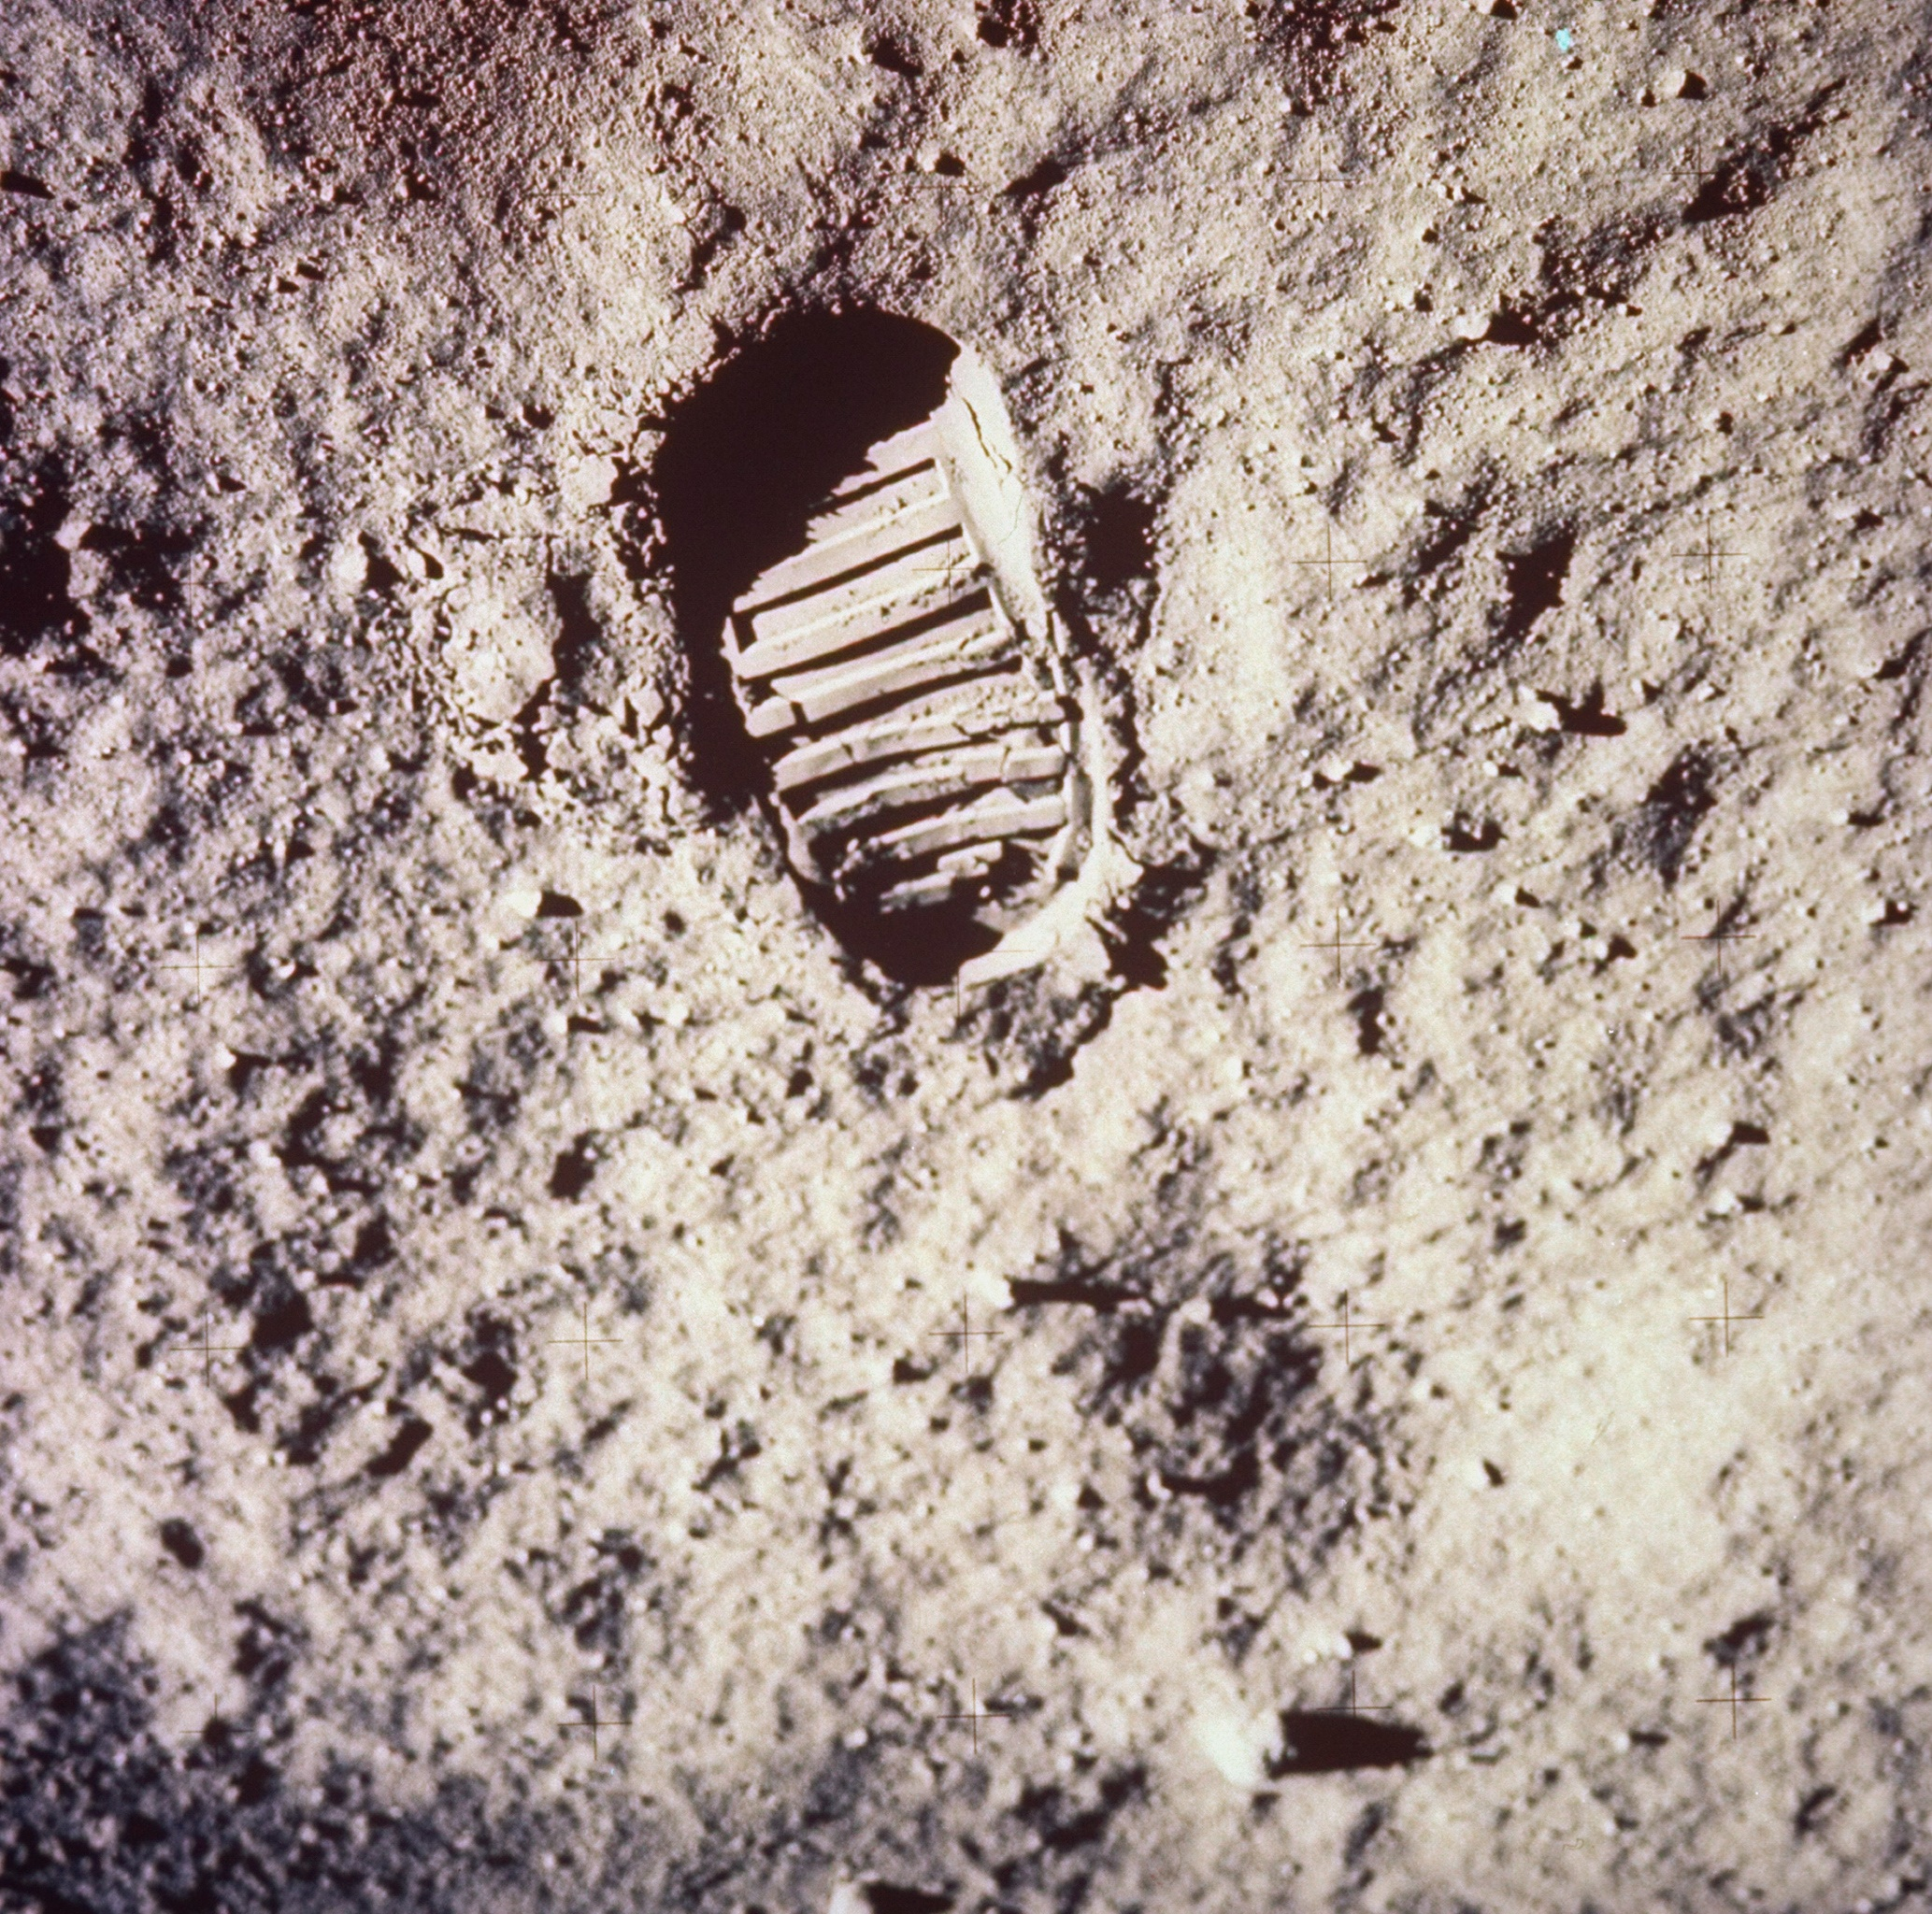 <b>Neil Armstrong's Footprint on the Moon, 1969</b>; Footprint left by astronaut on lunar soil during Apollo 11 lunar mission in which astronauts Neil Armstrong and Buzz Aldrin took walk on moon's surface.